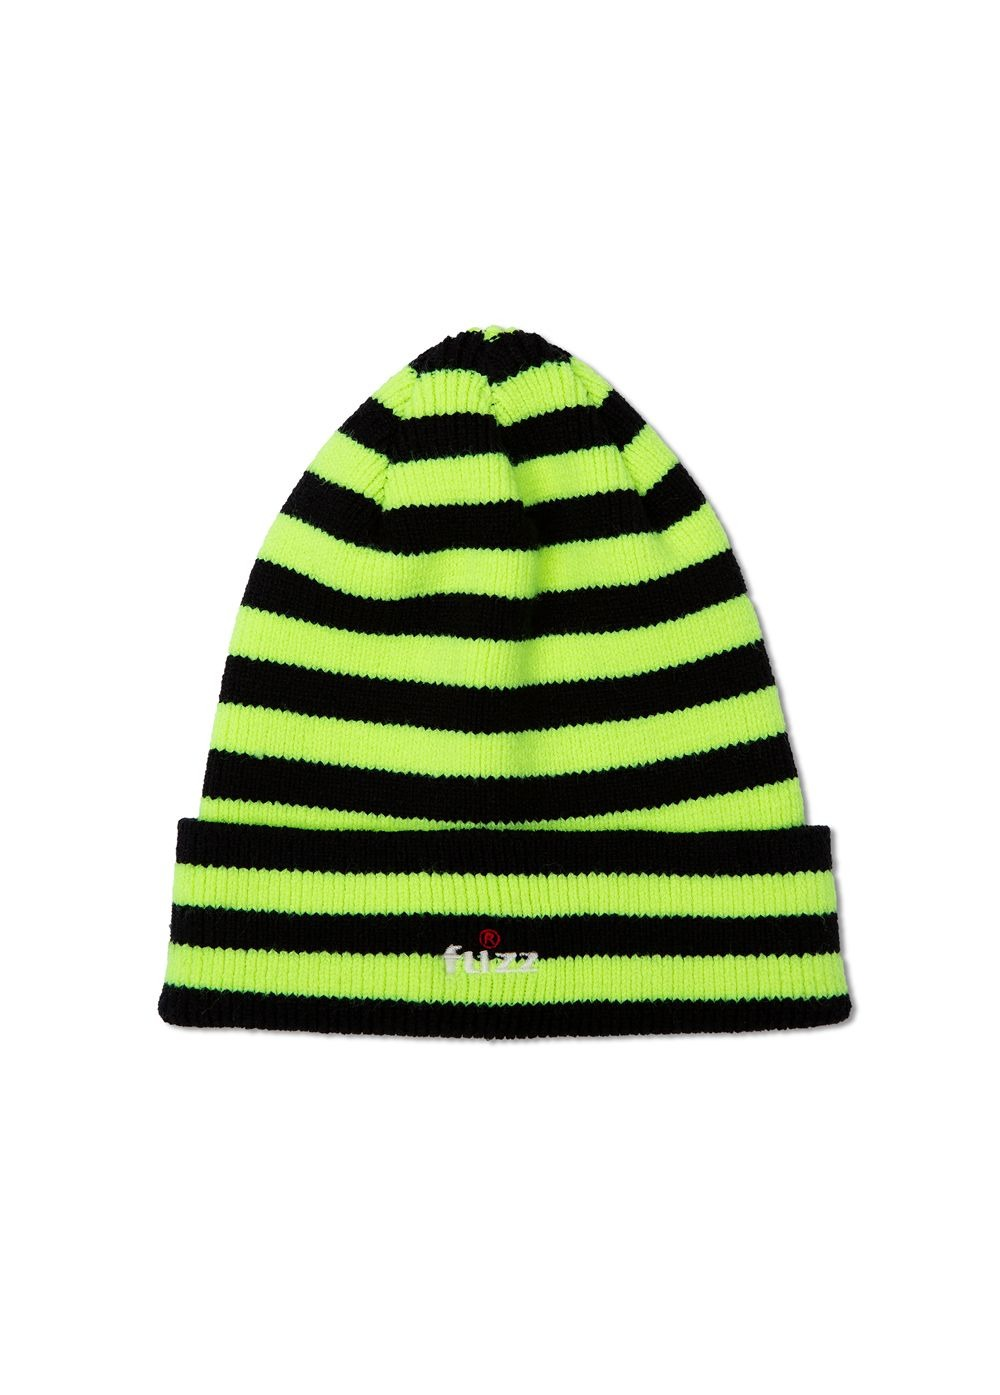 FUZZ R LOGO BEANIE yellow green